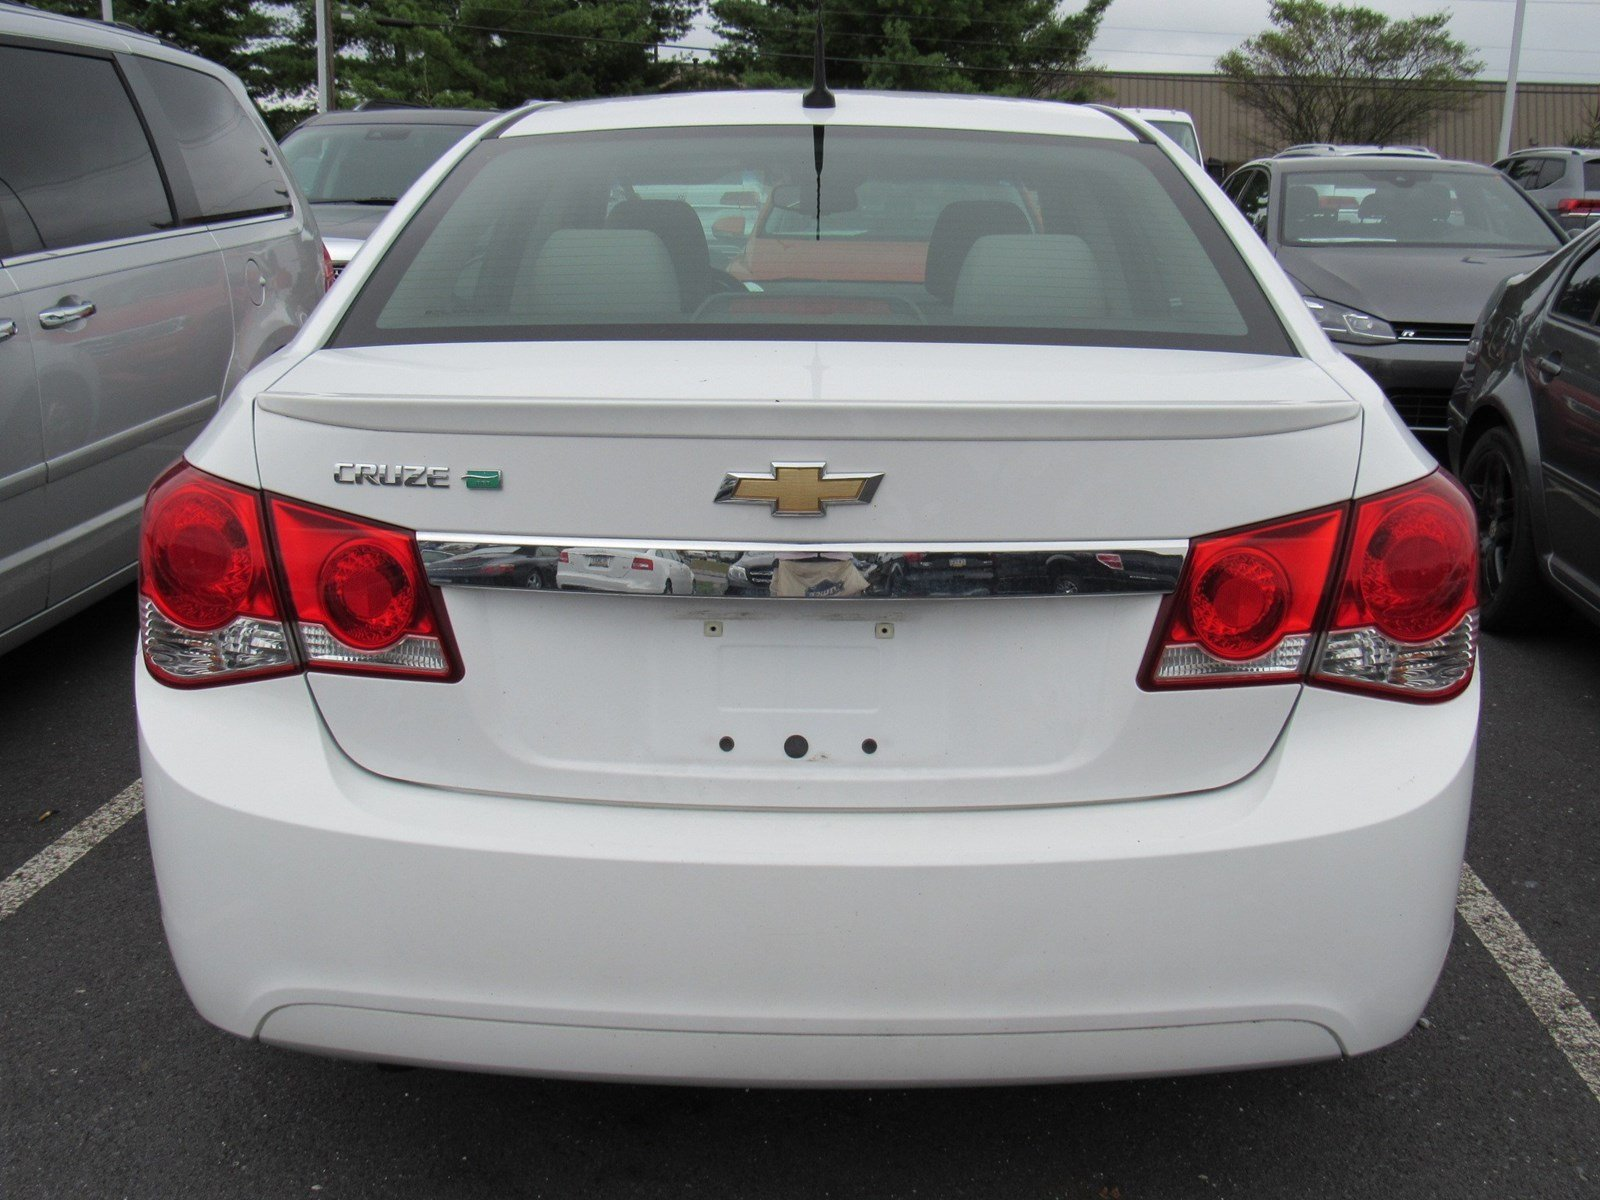 Pre-Owned 2011 Chevrolet Cruze ECO with 1XF